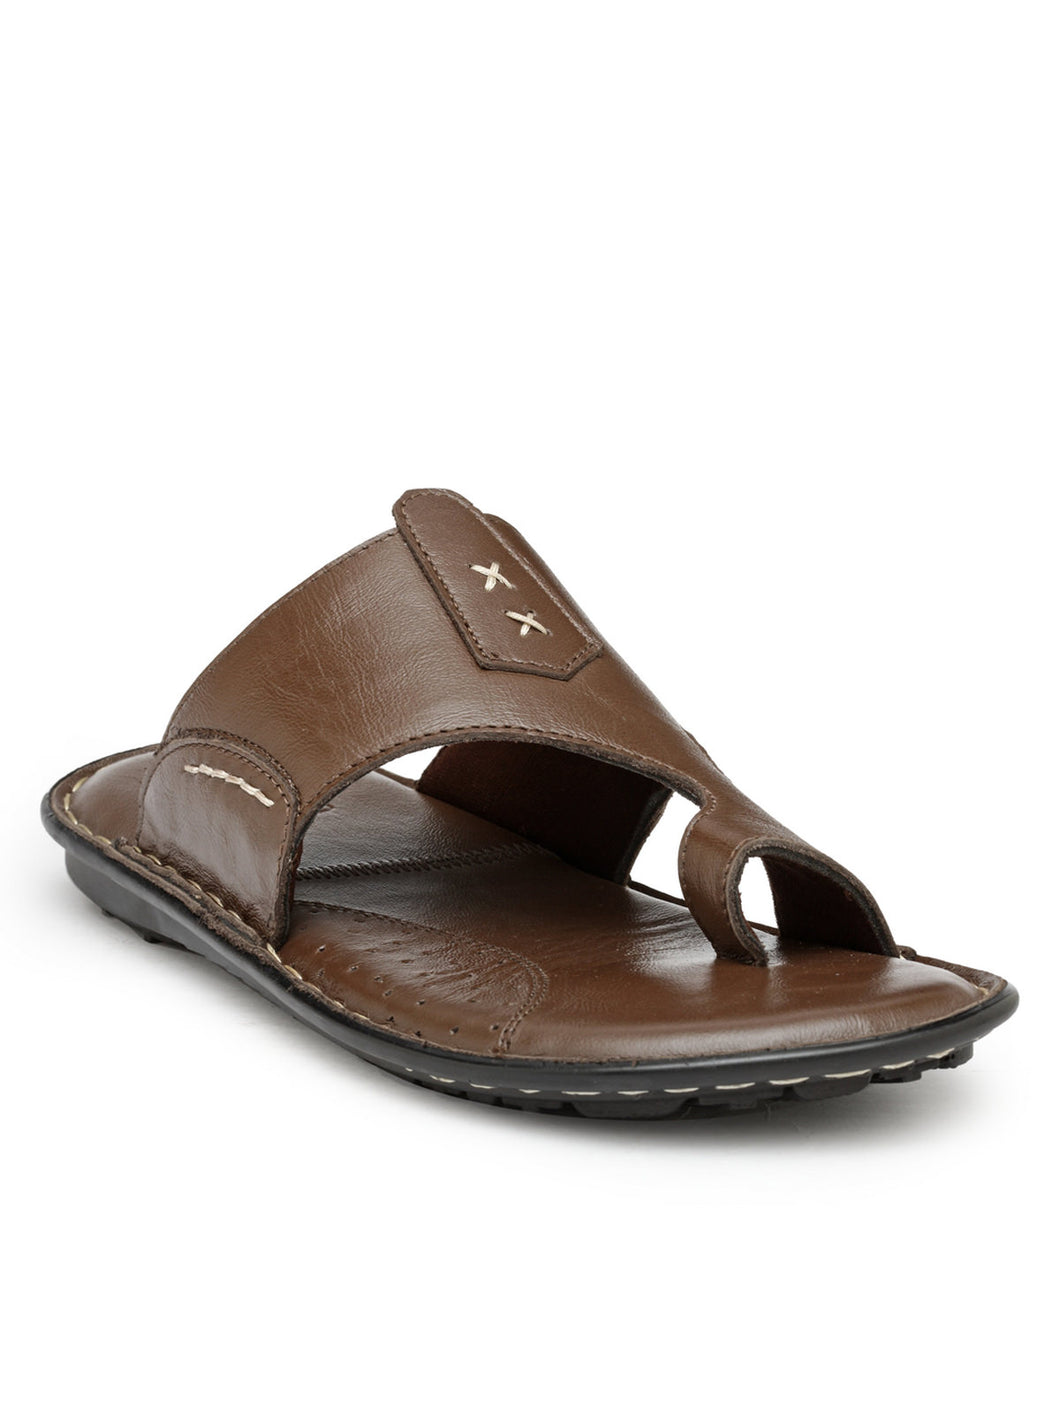 Teakwood Brown Daily Wear Sandals